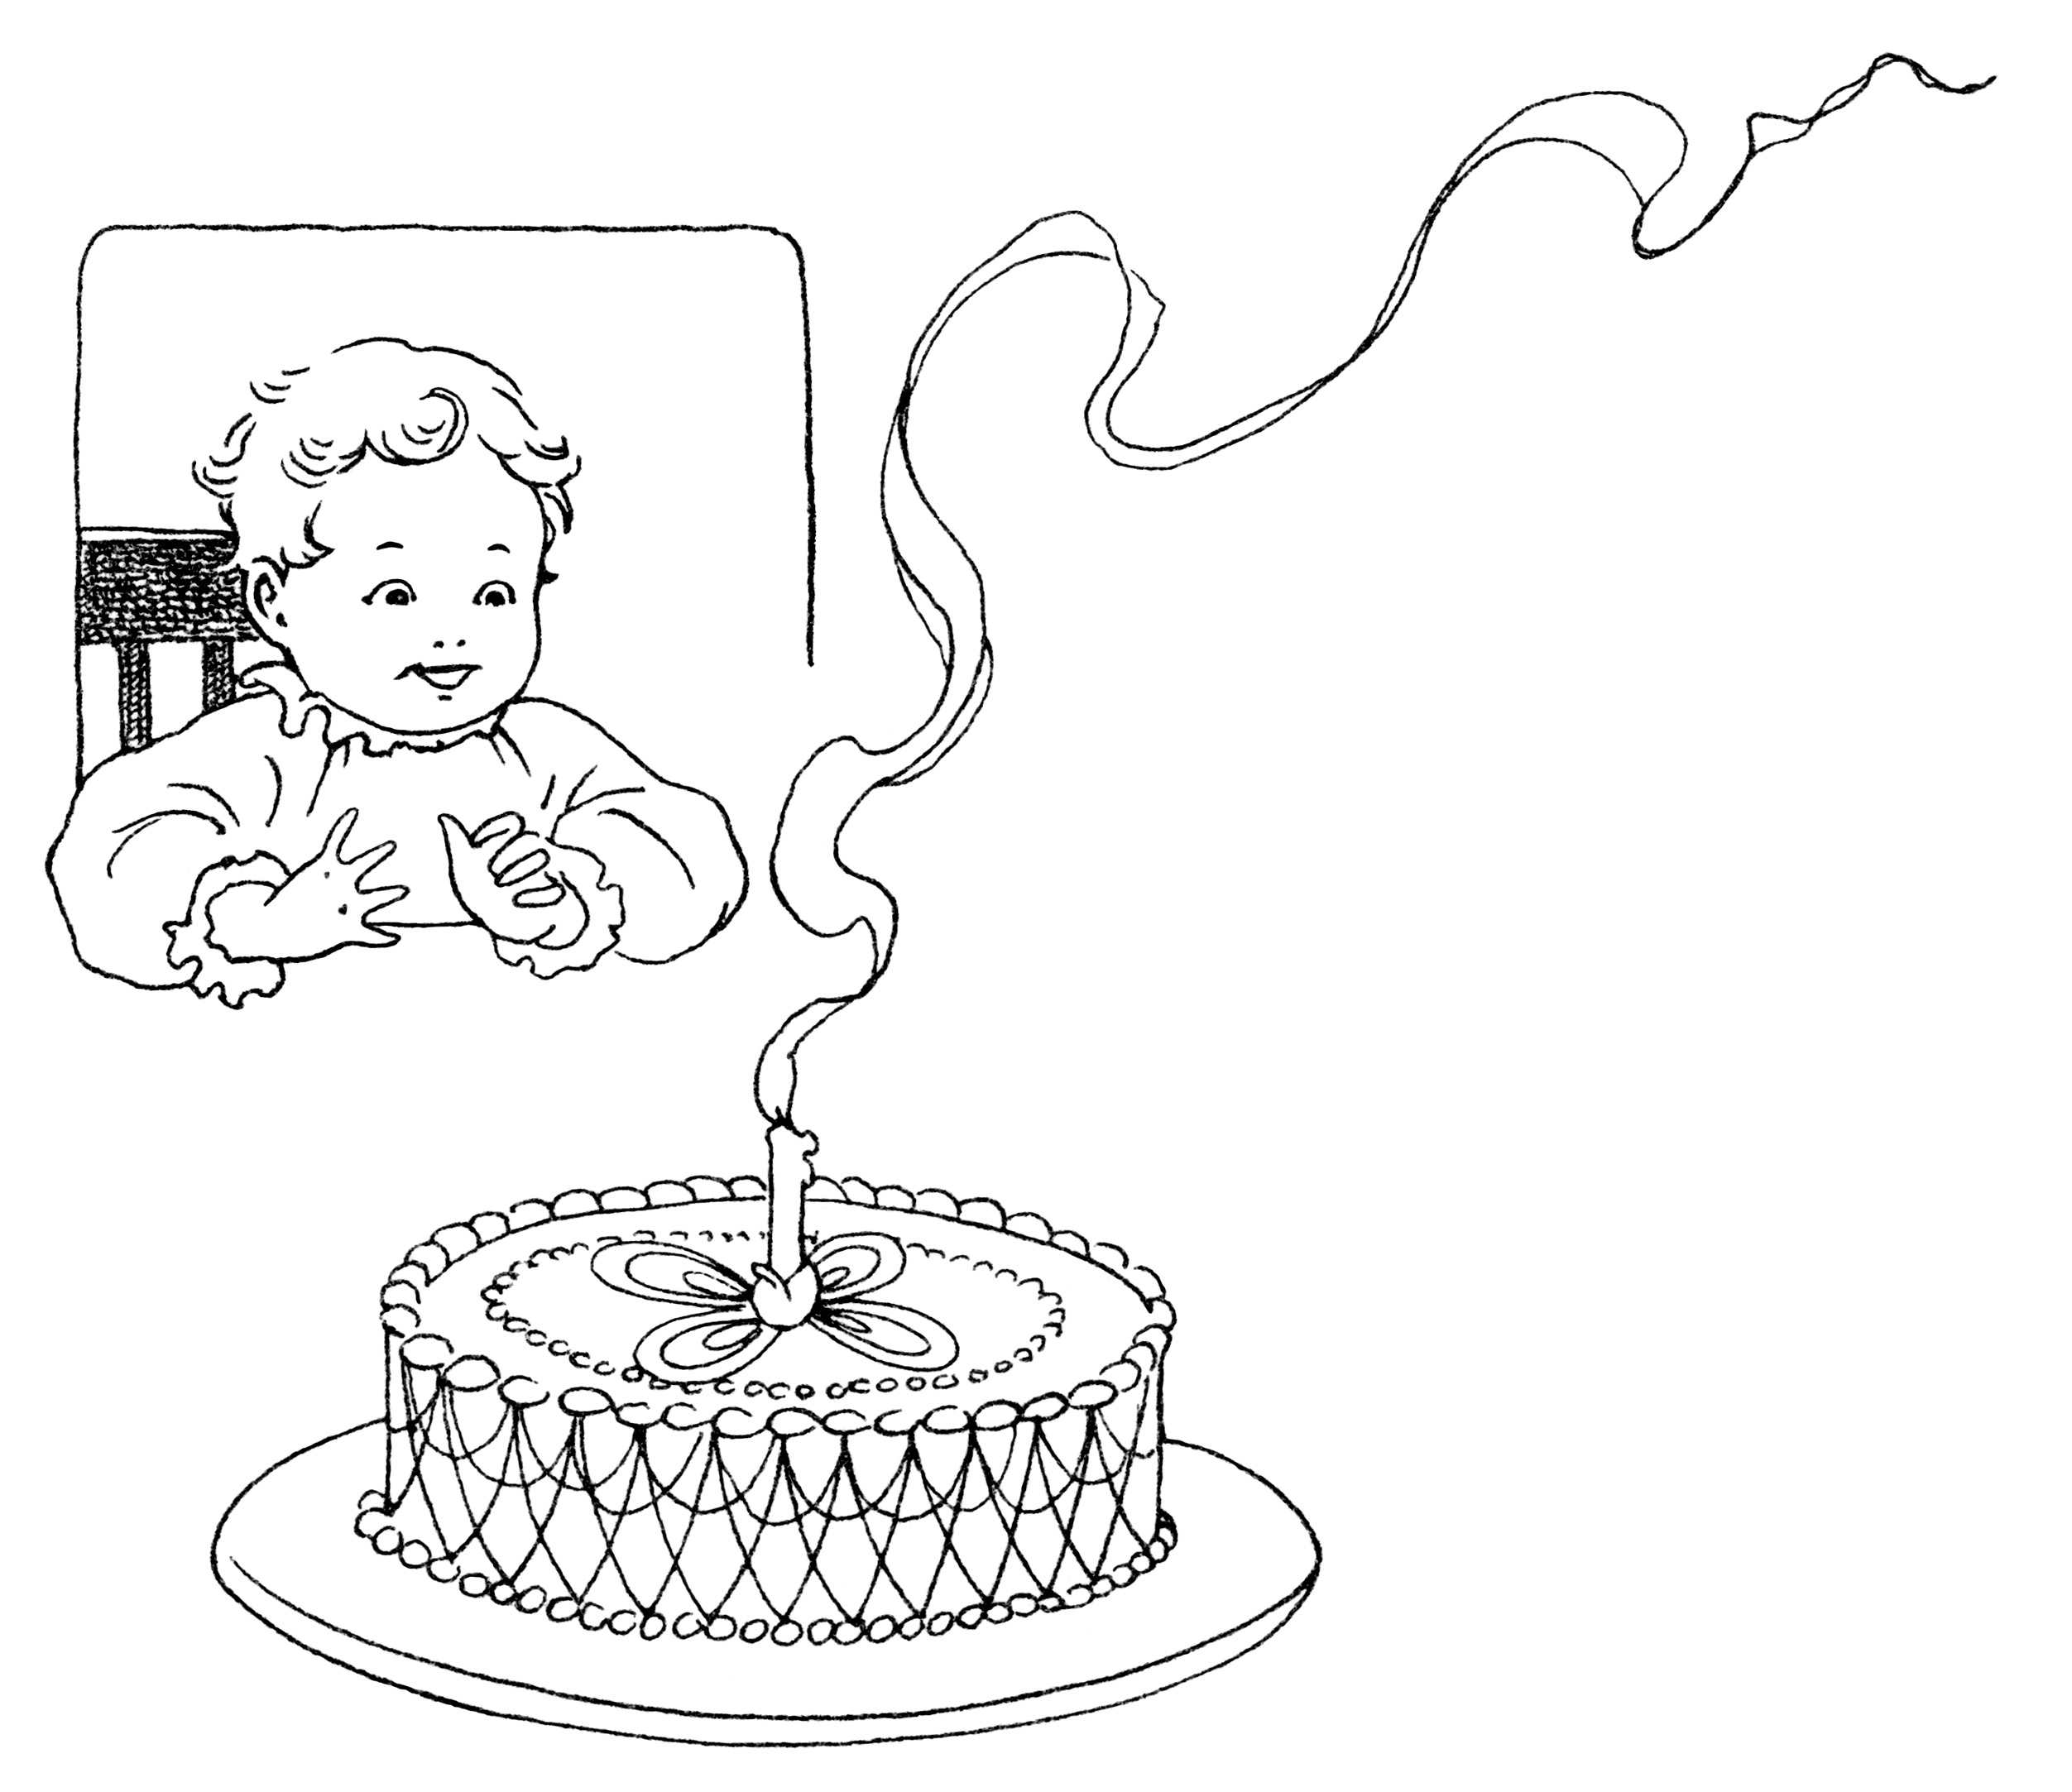 Baby's First Birthday ~ Free Vintage Clip Art.